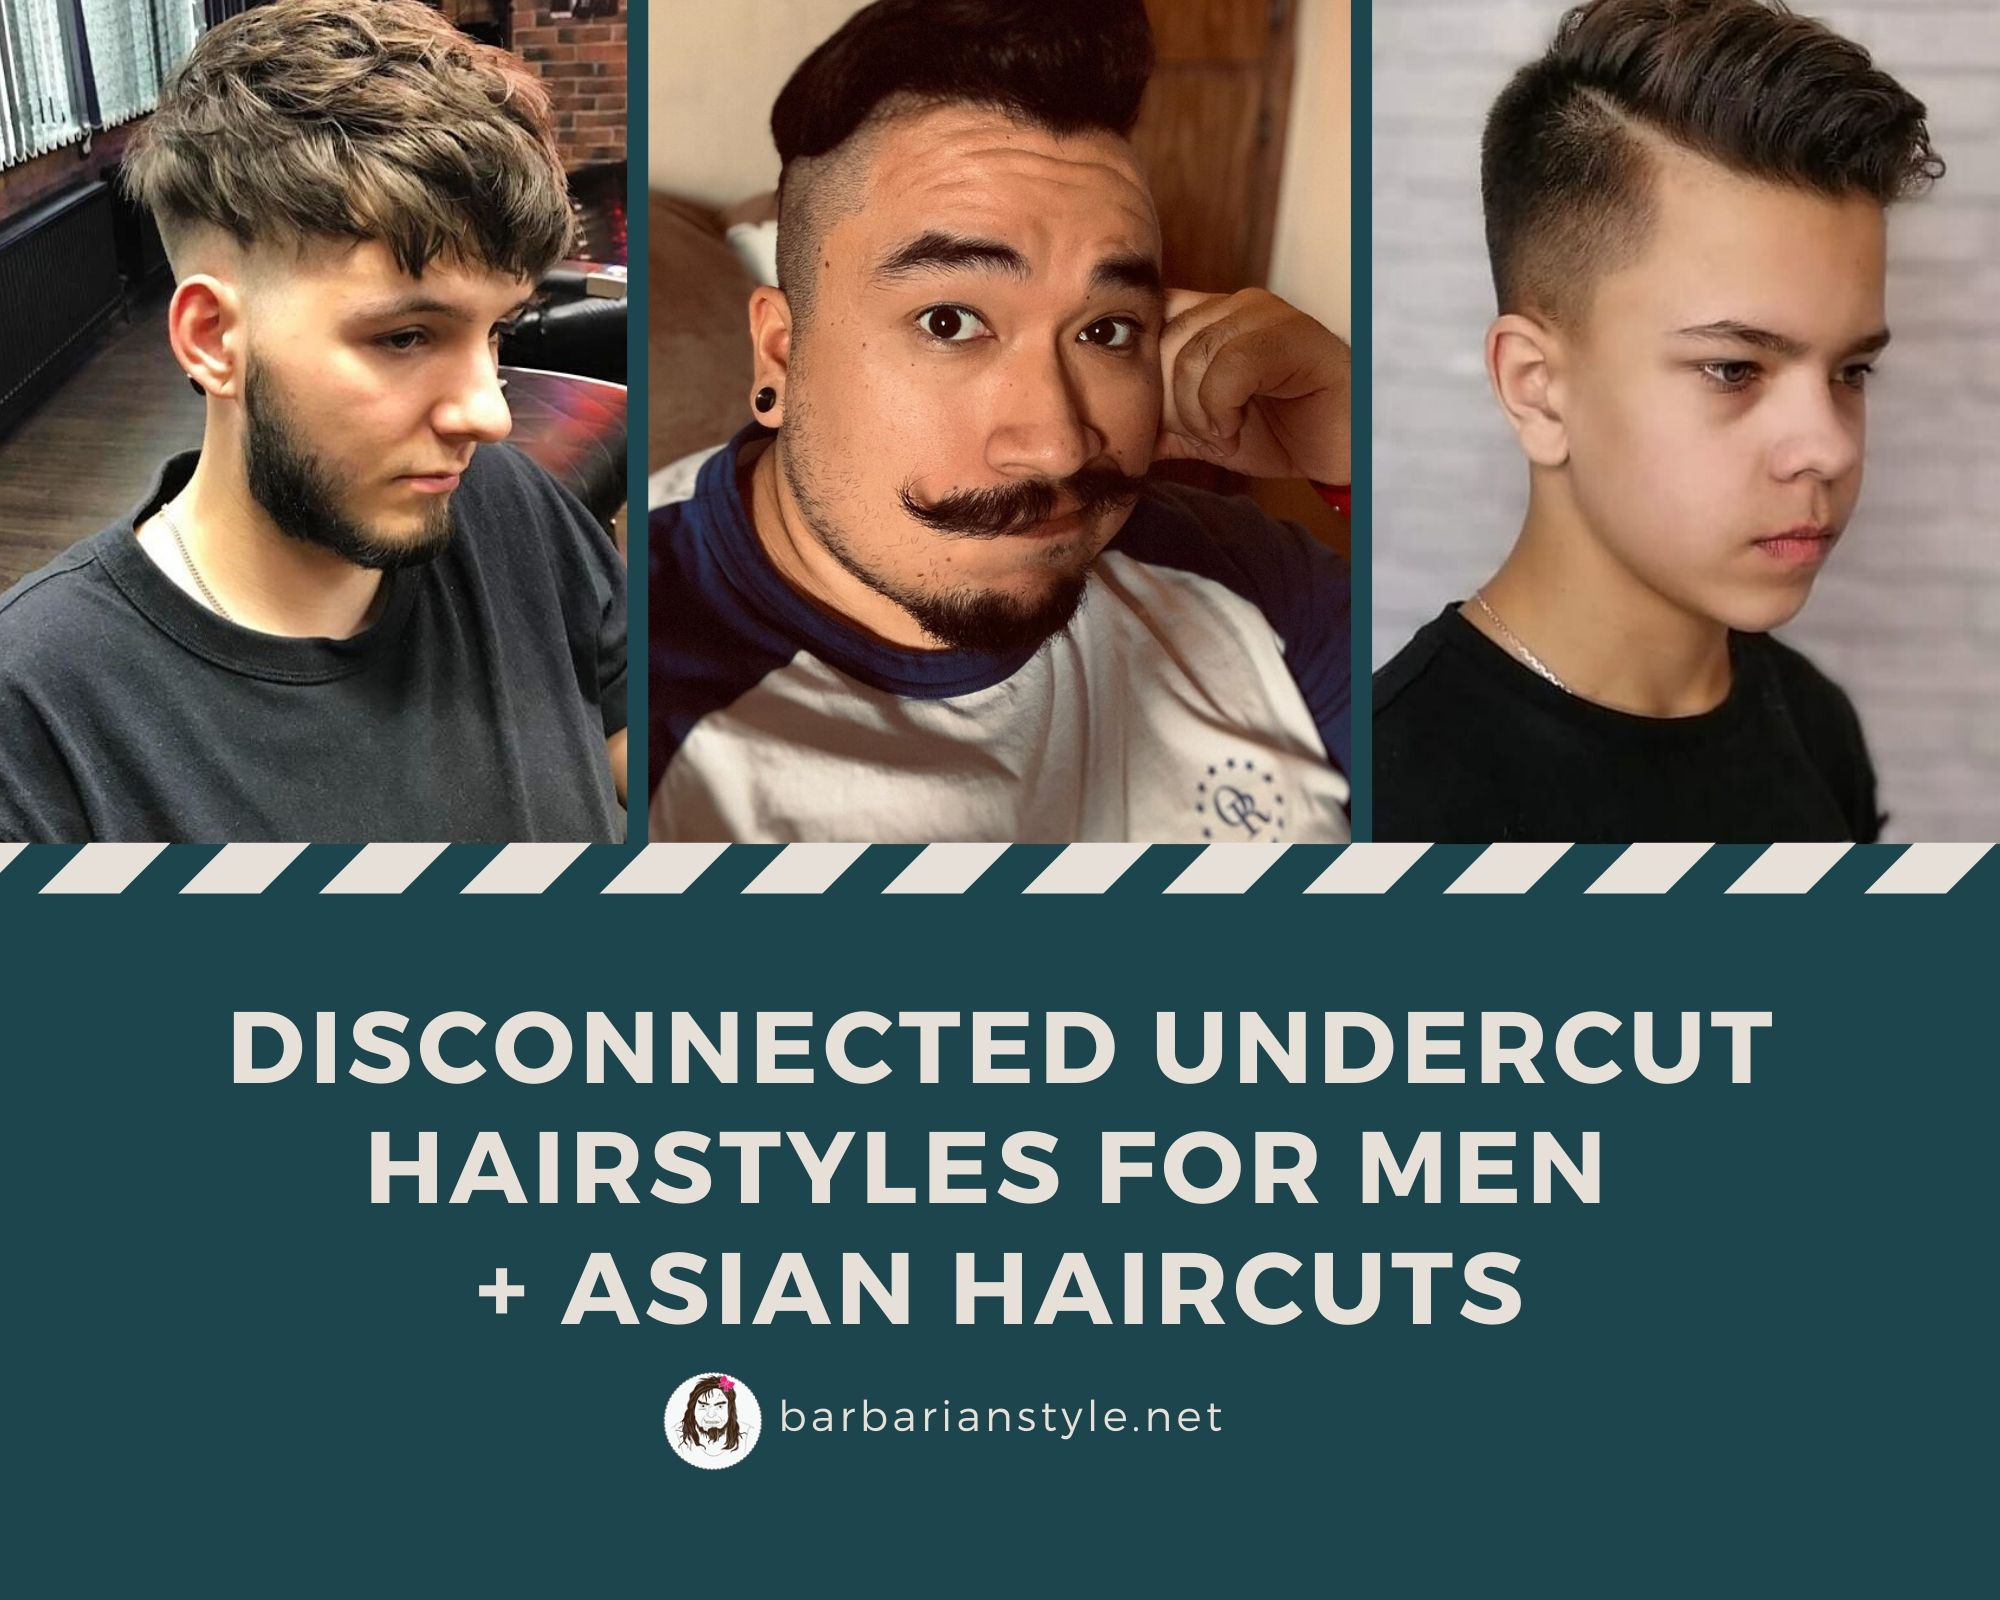 35 Disconnected Undercut Hairstyles For Men And Asian Haircuts